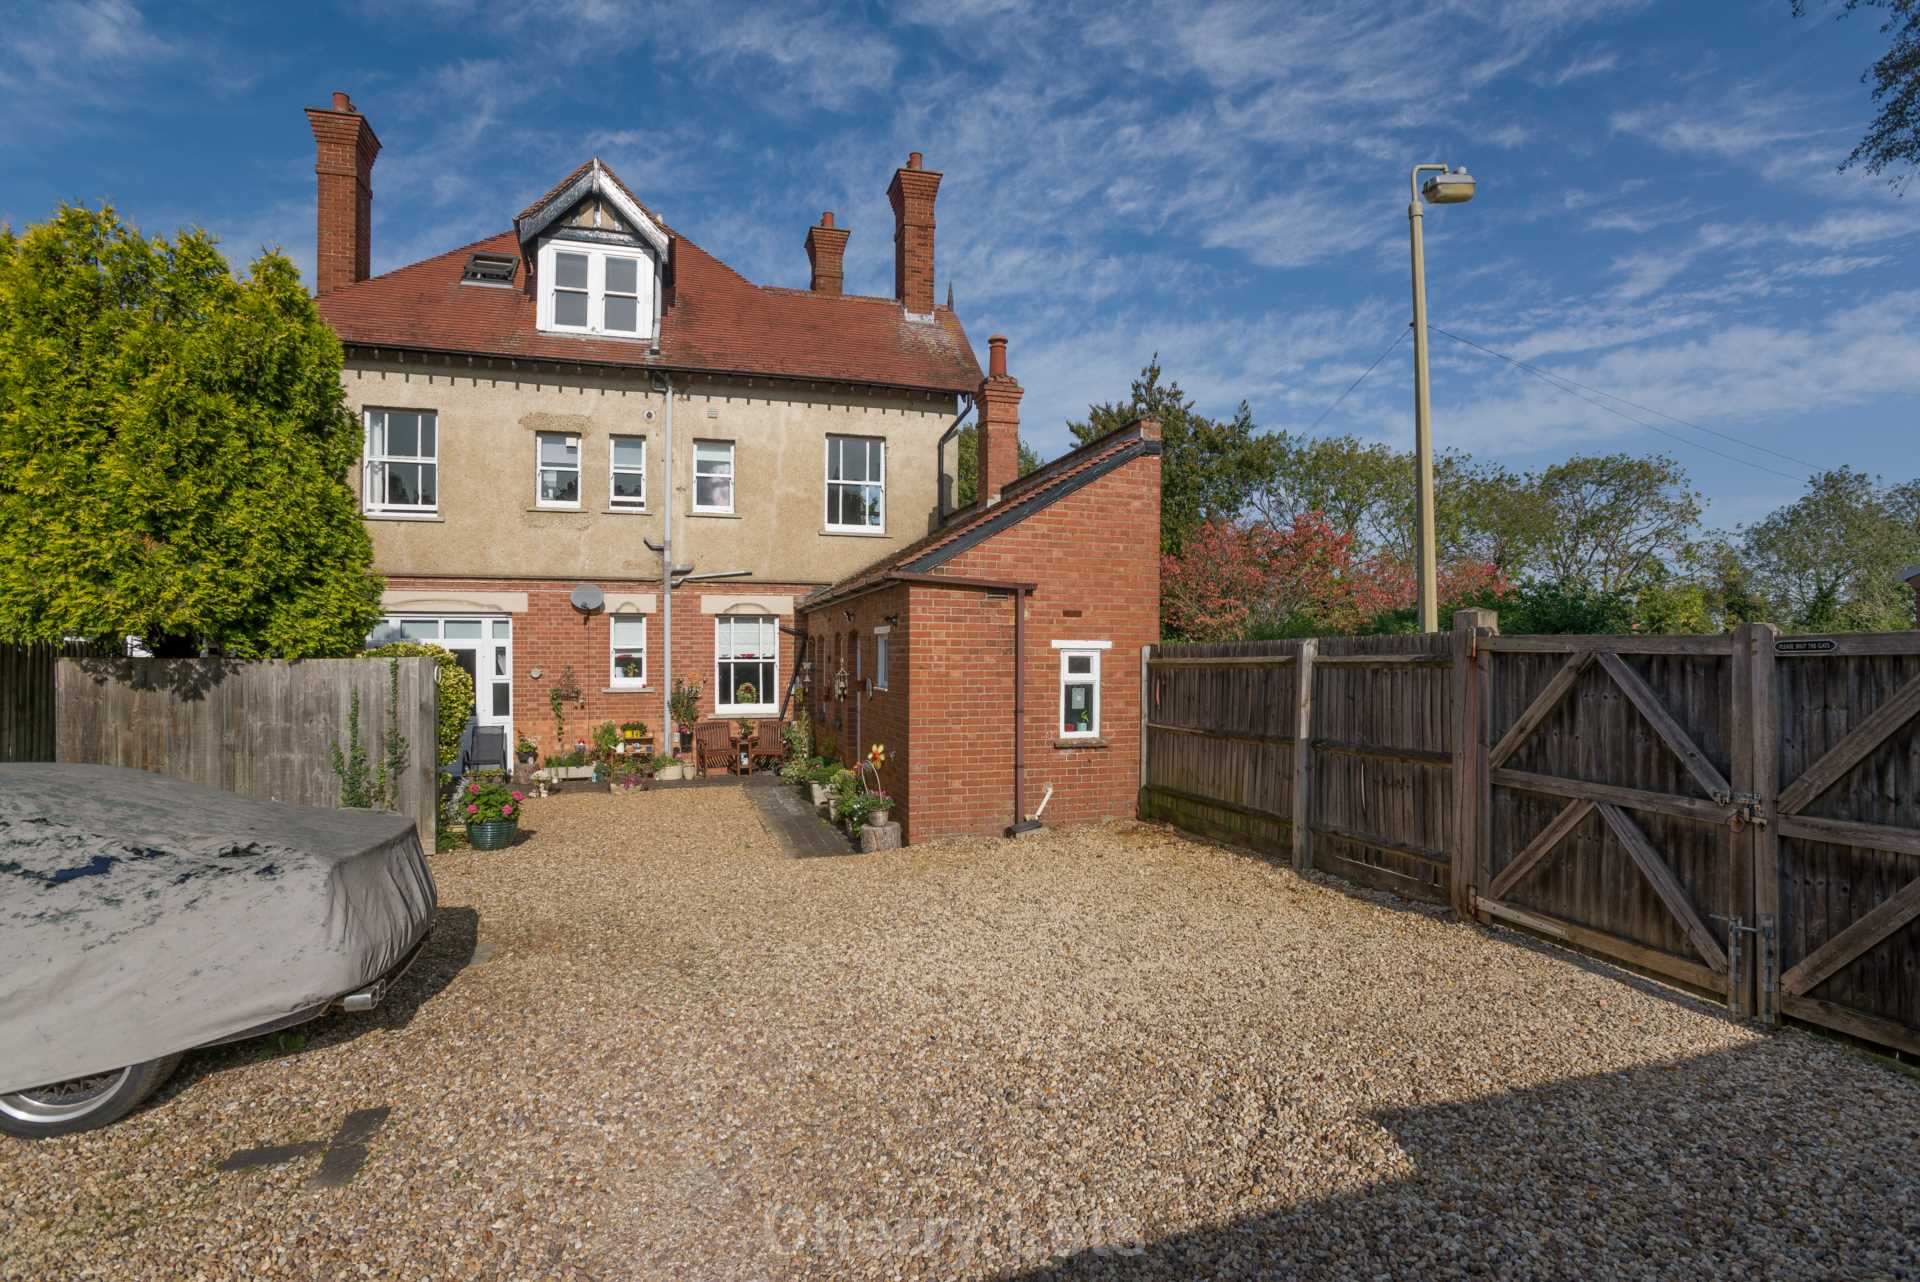 1 bed flat to rent in Bloxham Road, Banbury, OX16  - Property Image 11